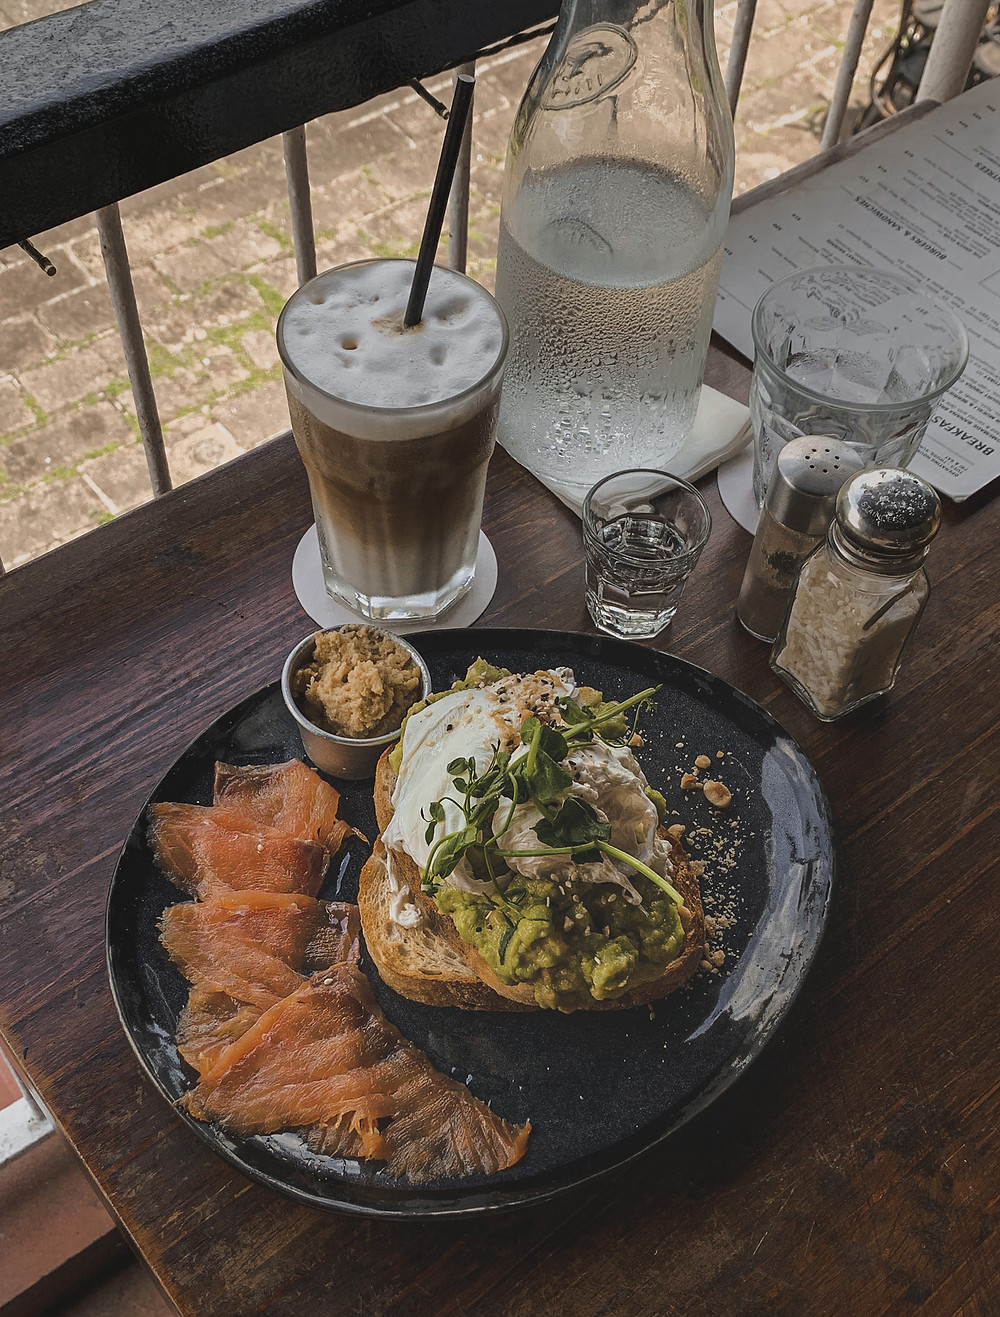 Poached eggs atop mashed avocado on toast served on a blue plate with a side of smoked salmon and iced latte